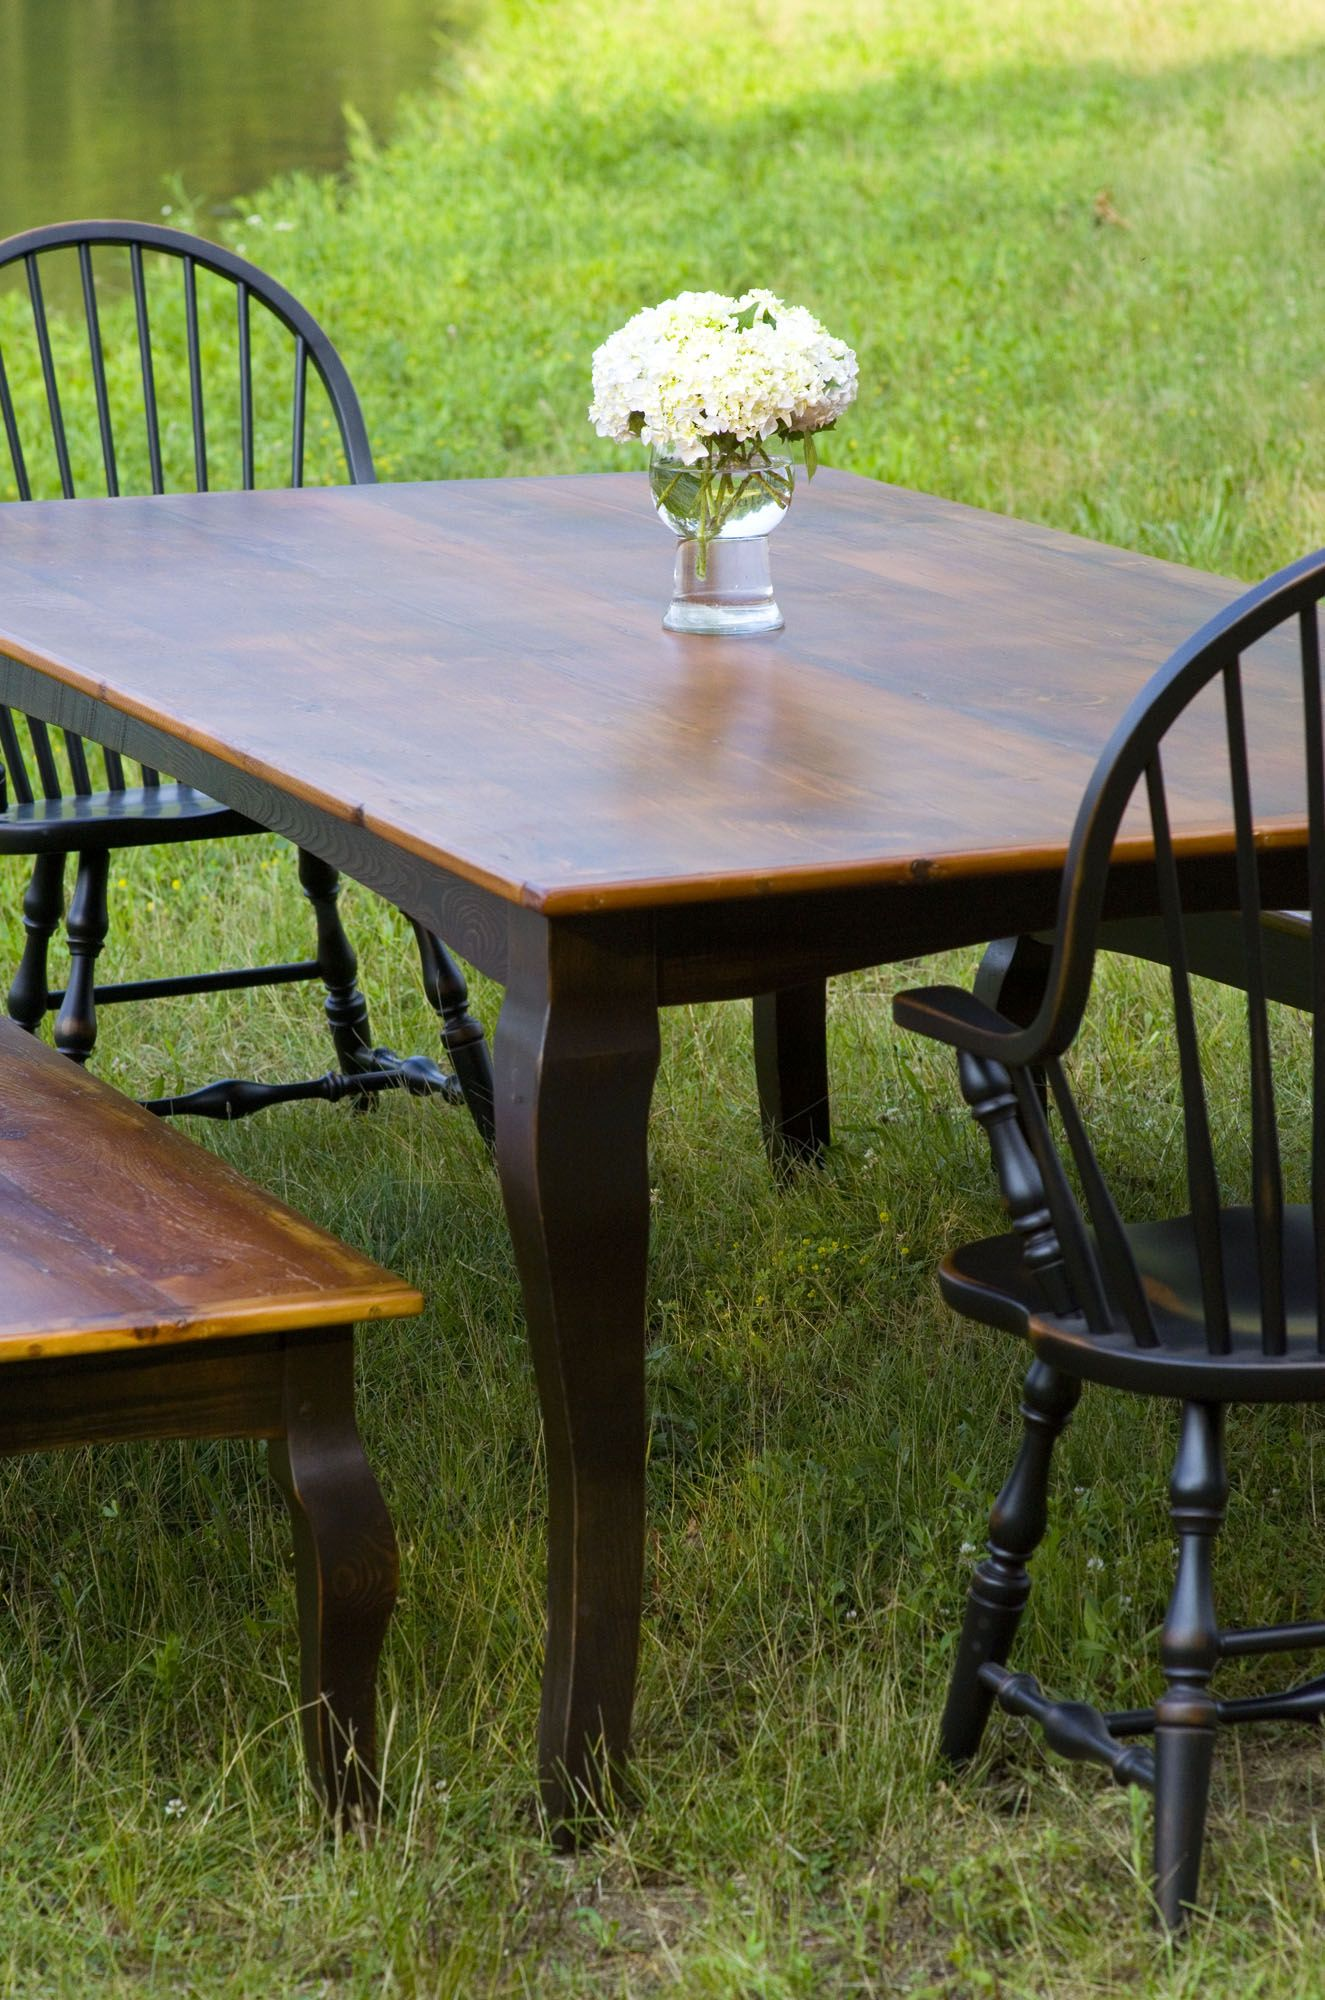 Farm Table Made Of Reclaimed Pine Barn Wood With Cabriole Legs And